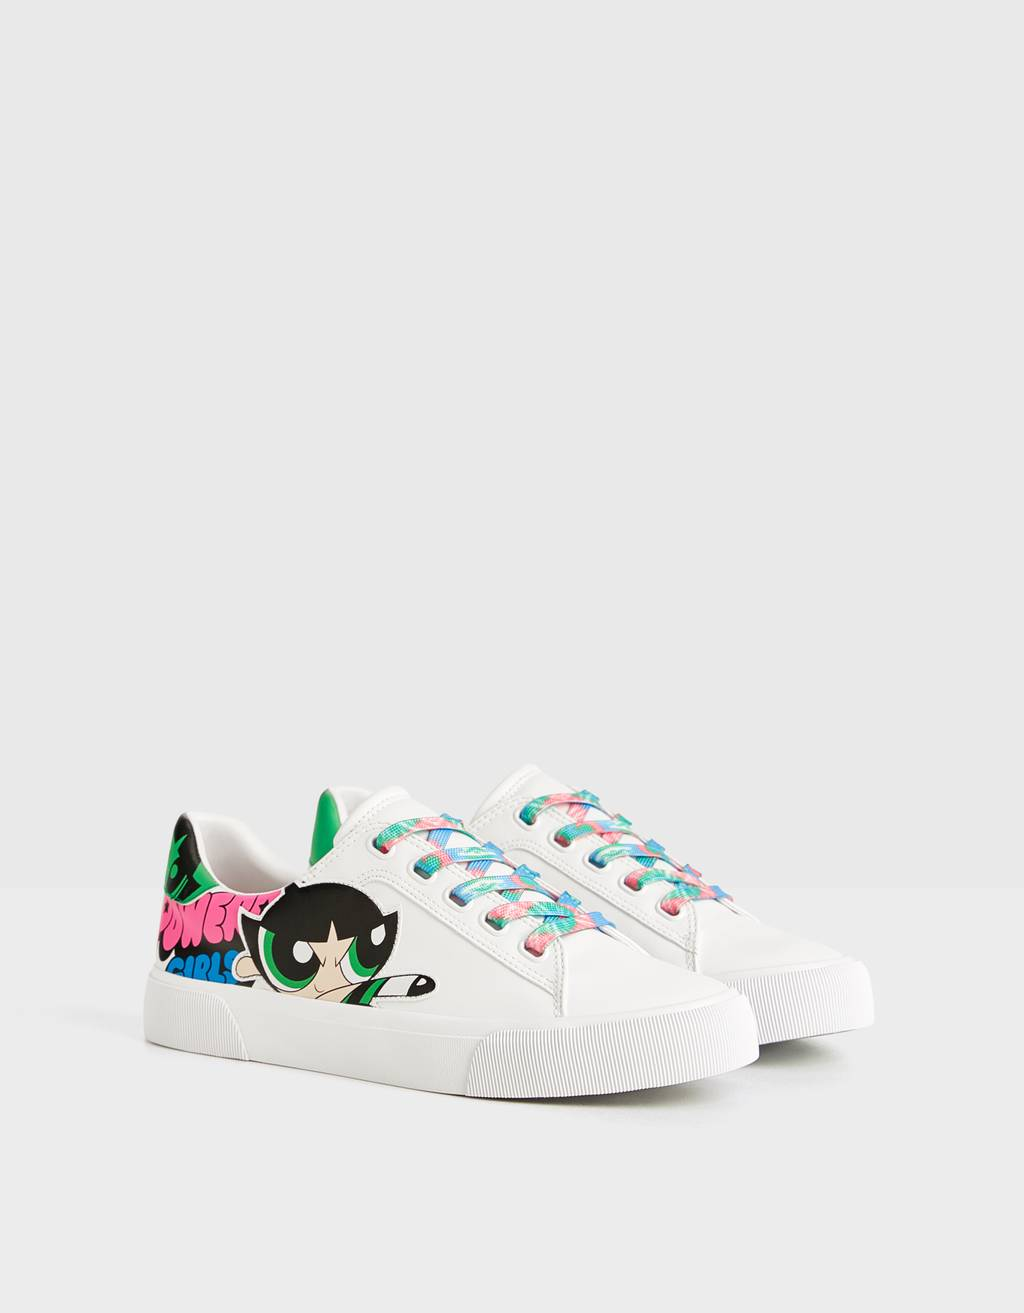 The Powerpuff Girls x Bershka sneakers